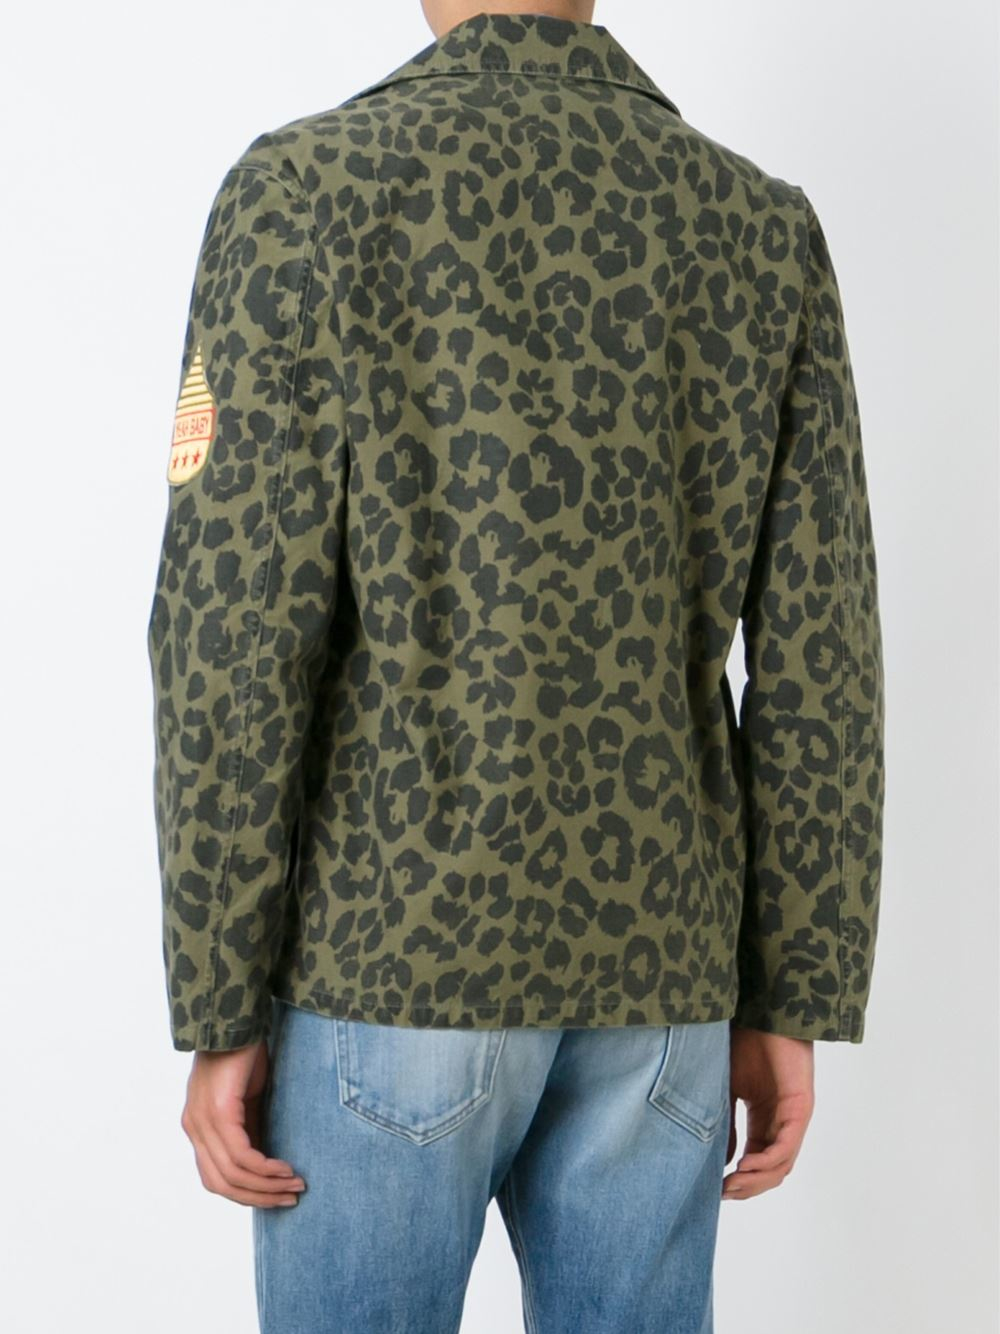 Lyst Saint Laurent Leopard Print Jacket In Green For Men